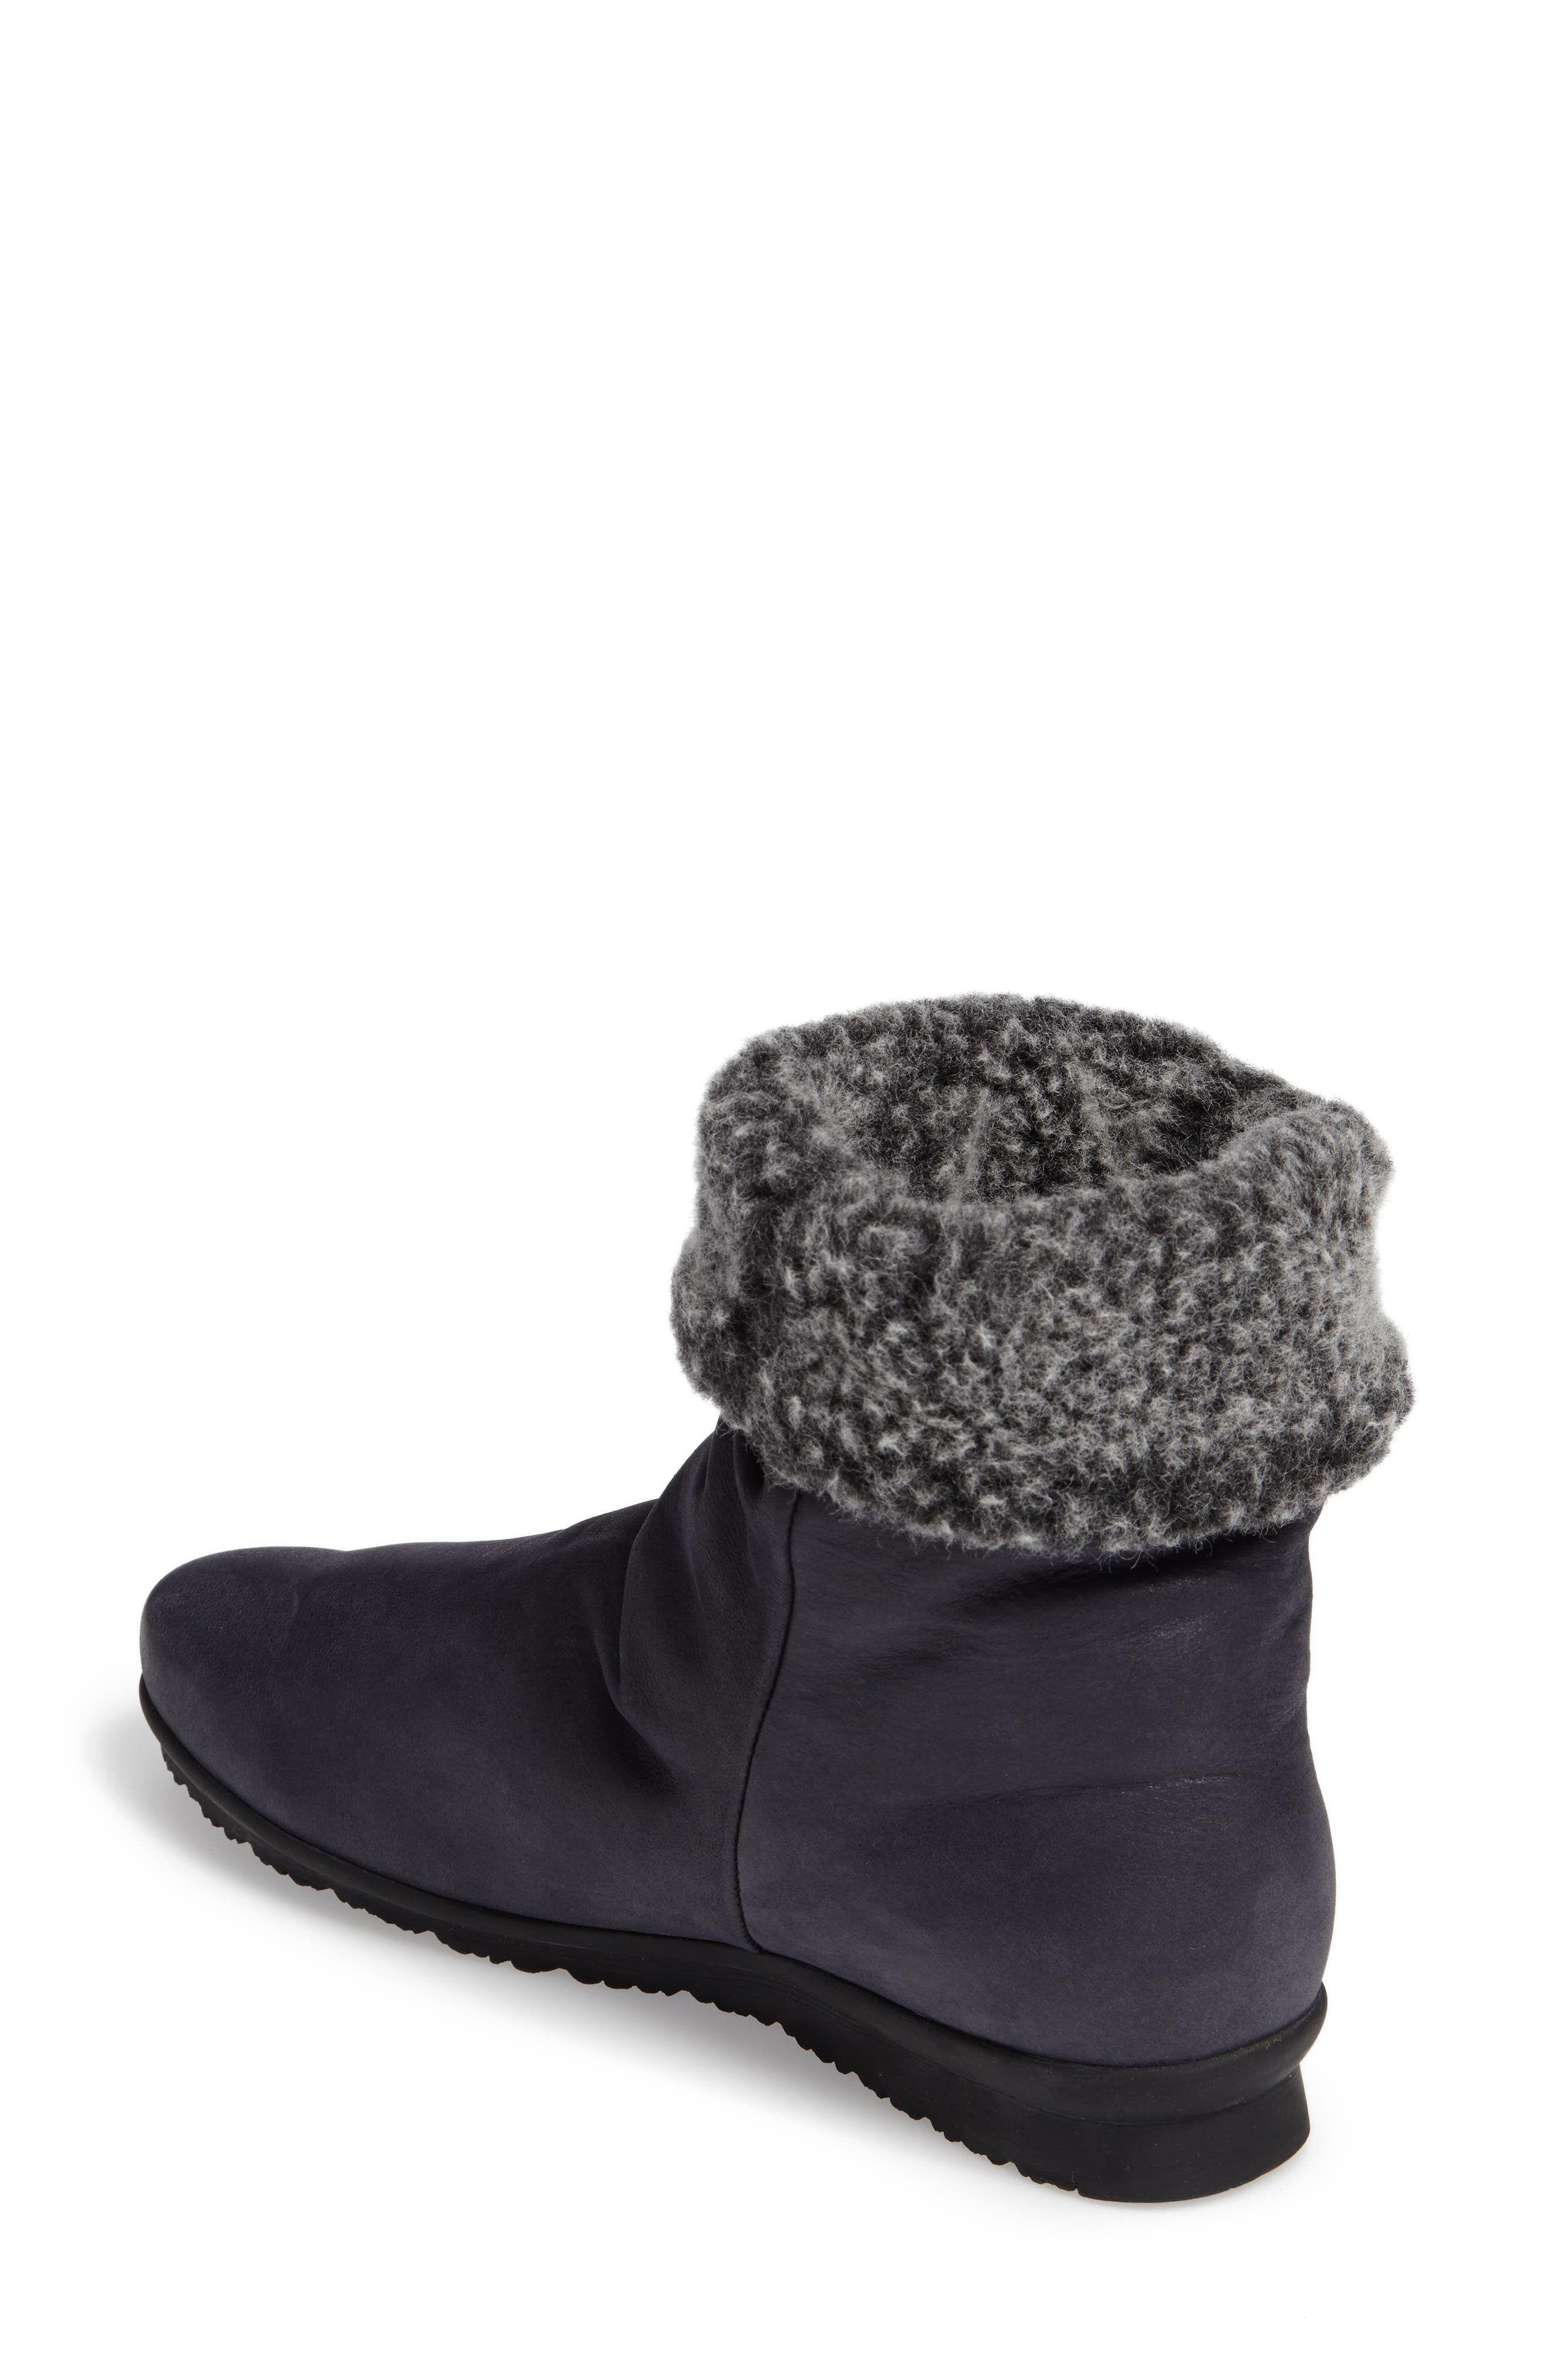 Barosa Faux Shearling Cuffed Bootie,                             Alternate thumbnail 3, color,